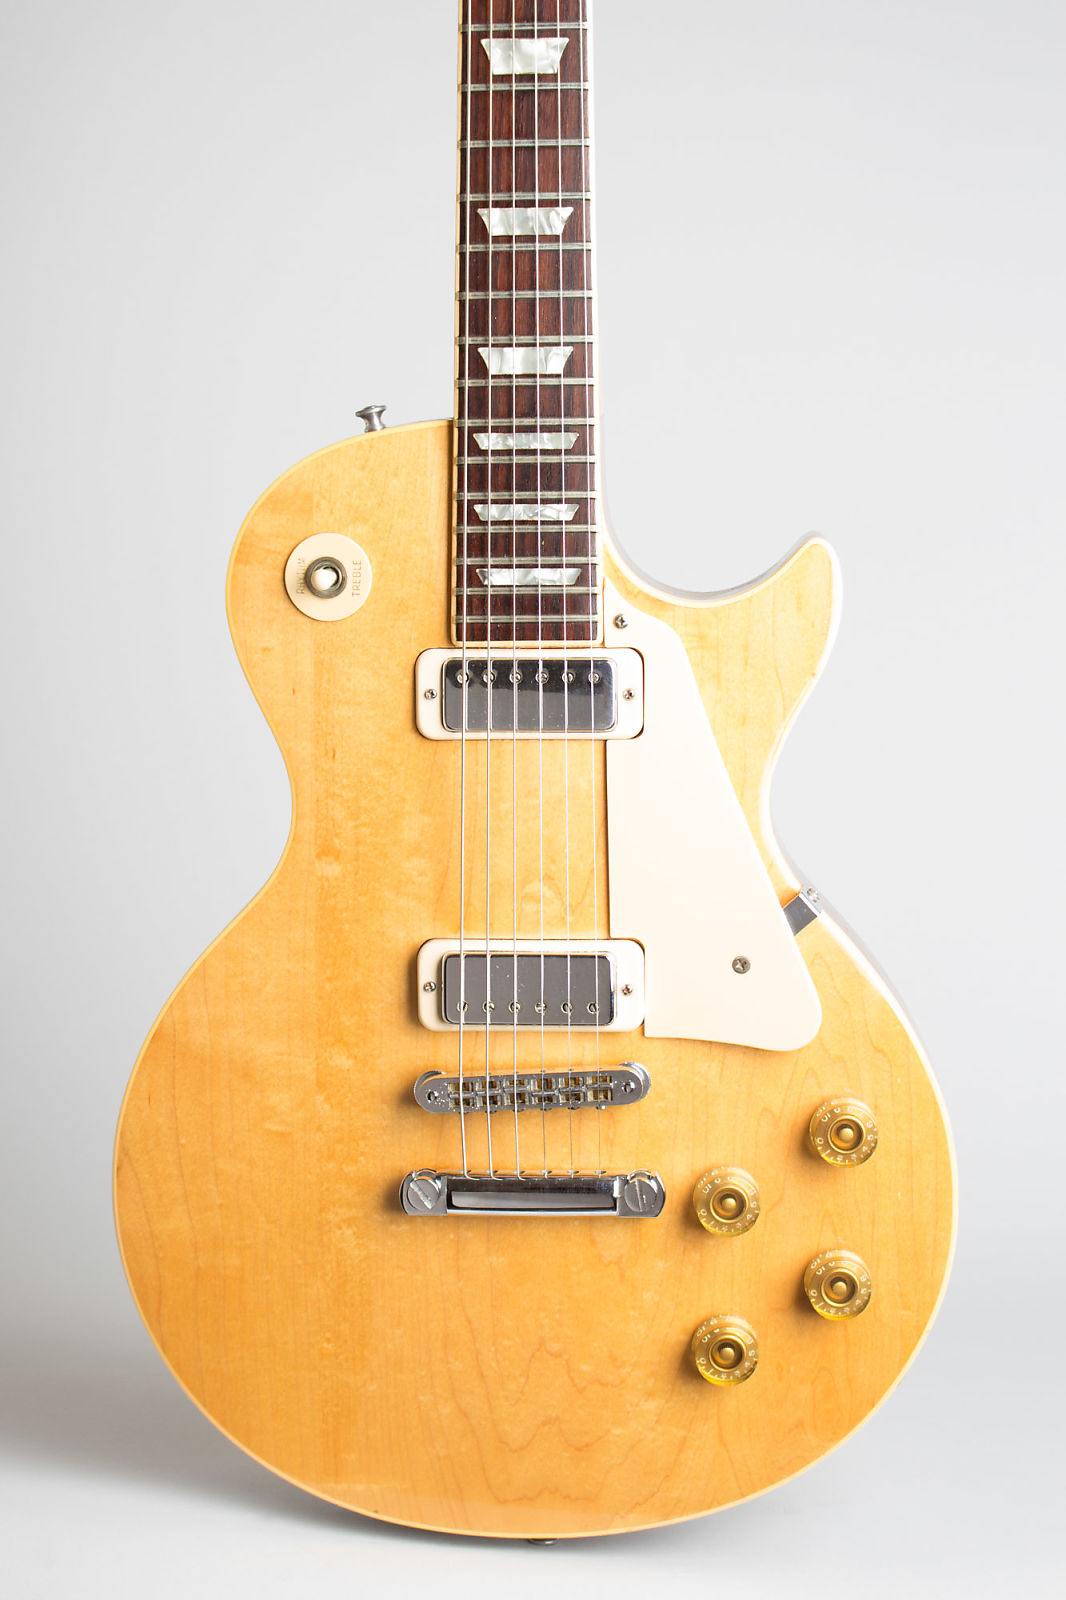 Gibson  Les Paul Deluxe Solid Body Electric Guitar (1979), ser. #70649567, black hard shell case.